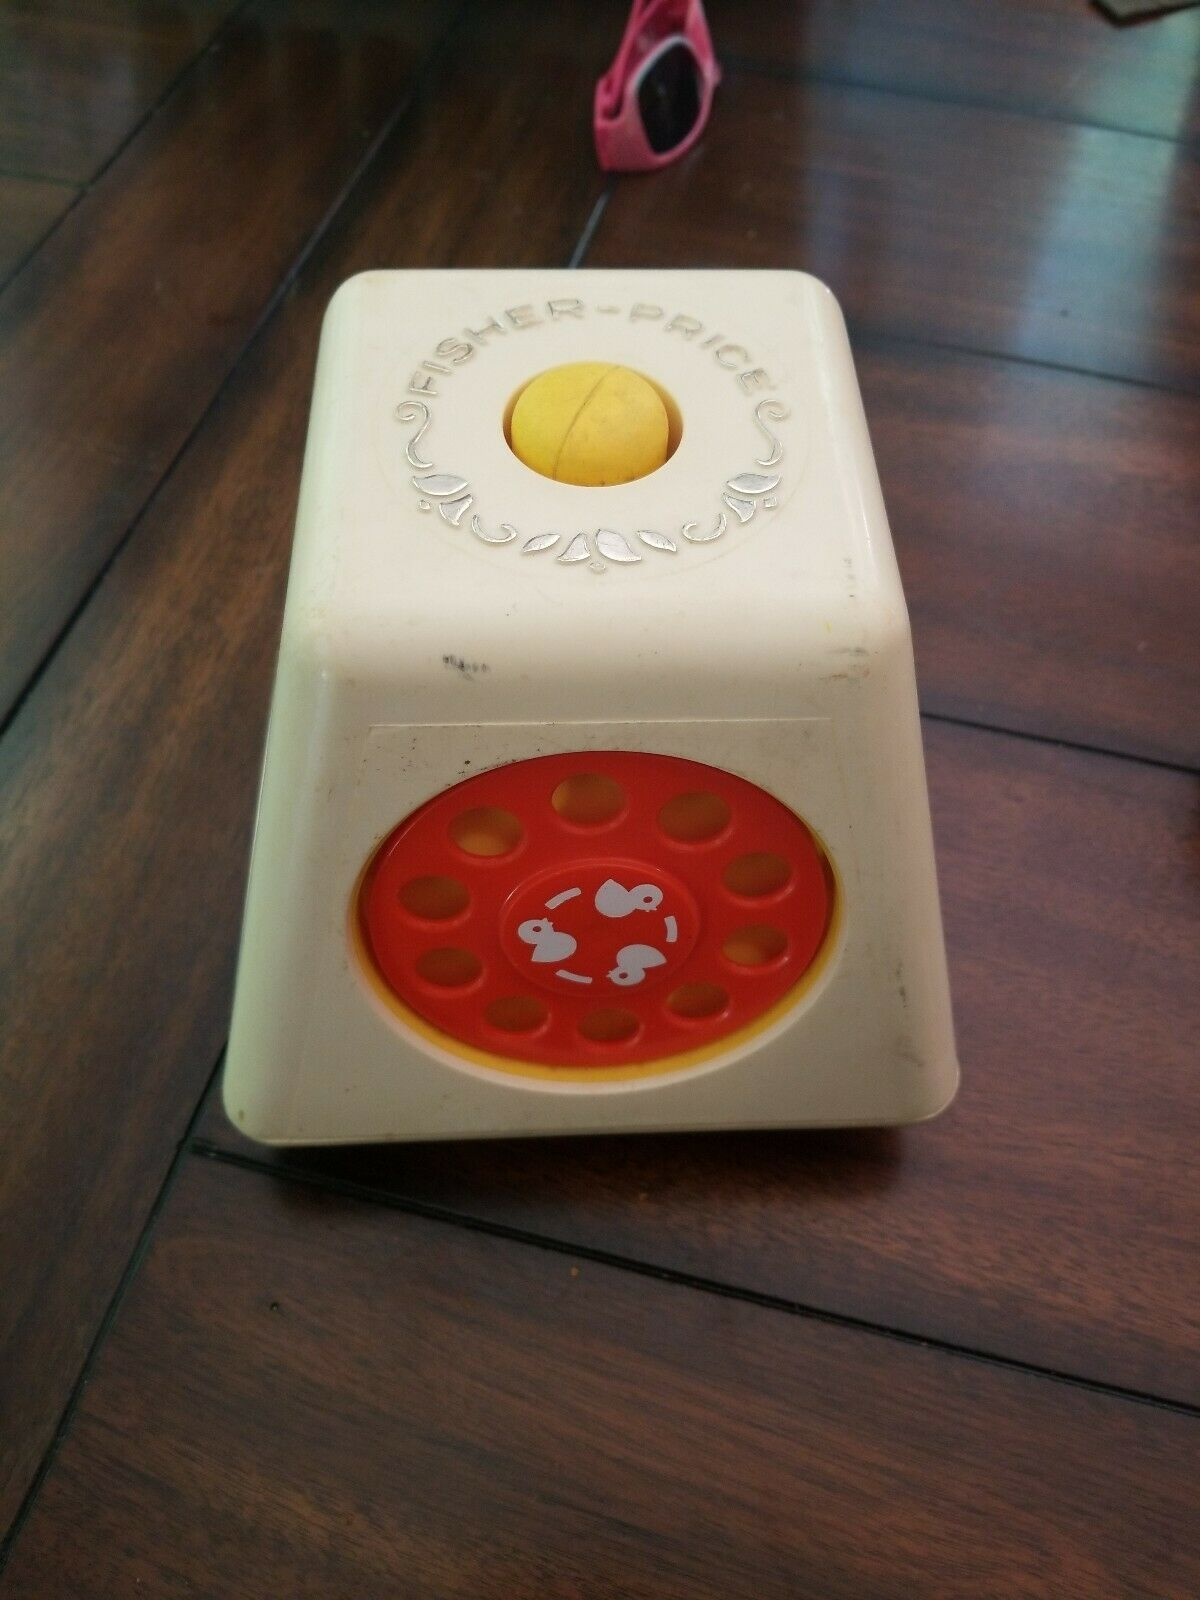 Fisher Price 1978 TURN & LEARN SPINNING BUSY BOX CUBE Baby VINTAGE Toy image 3